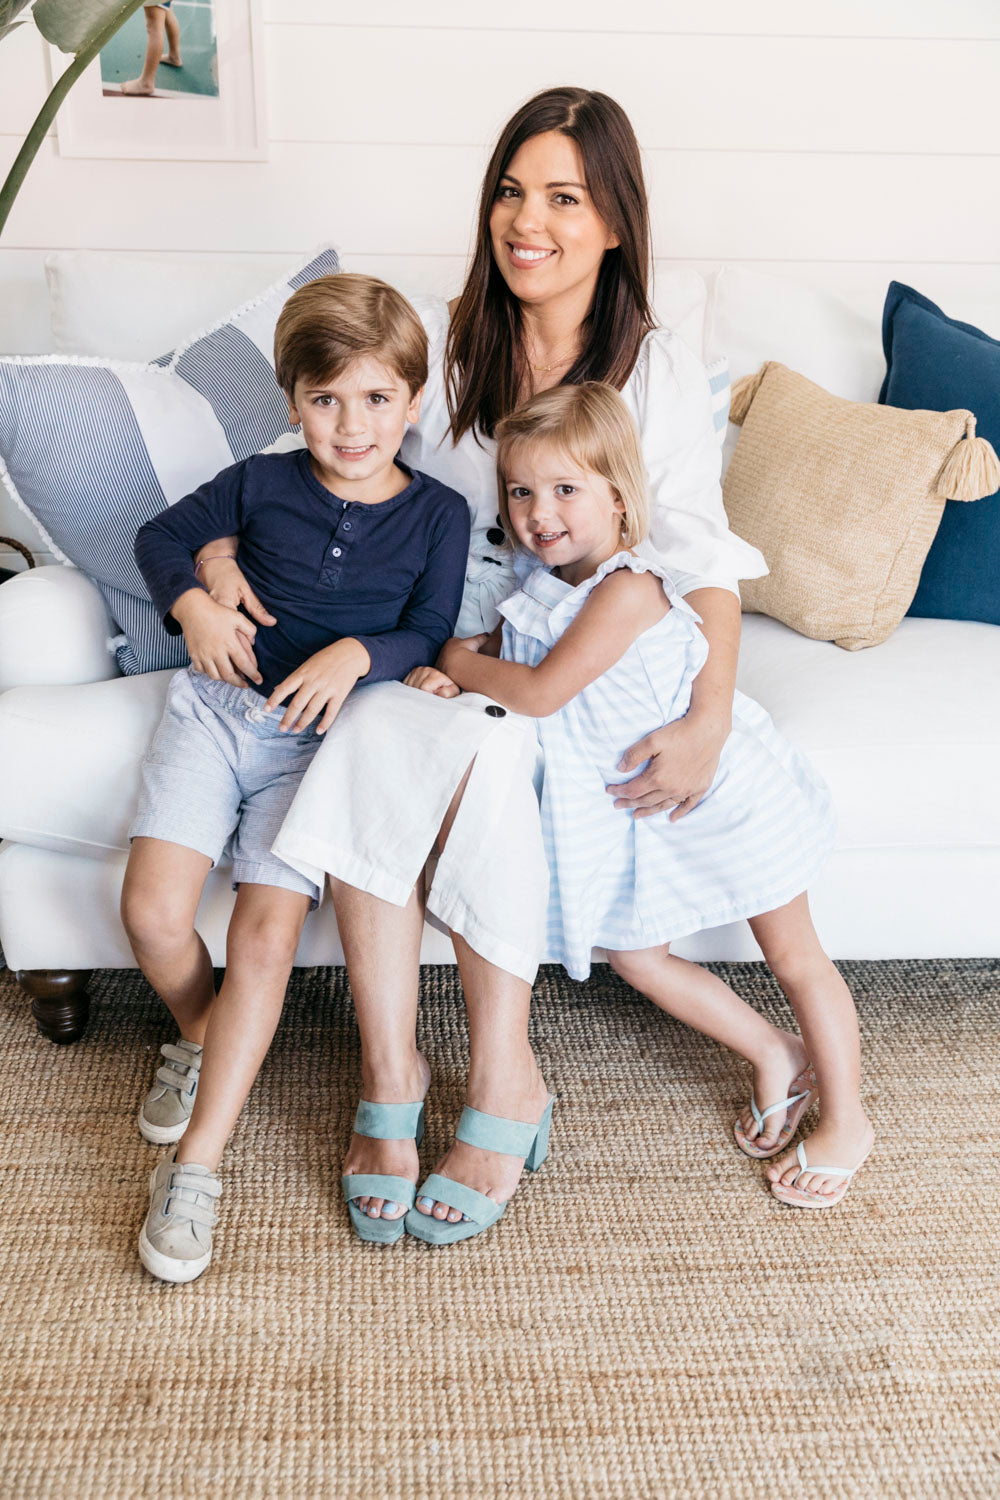 founder with her two children